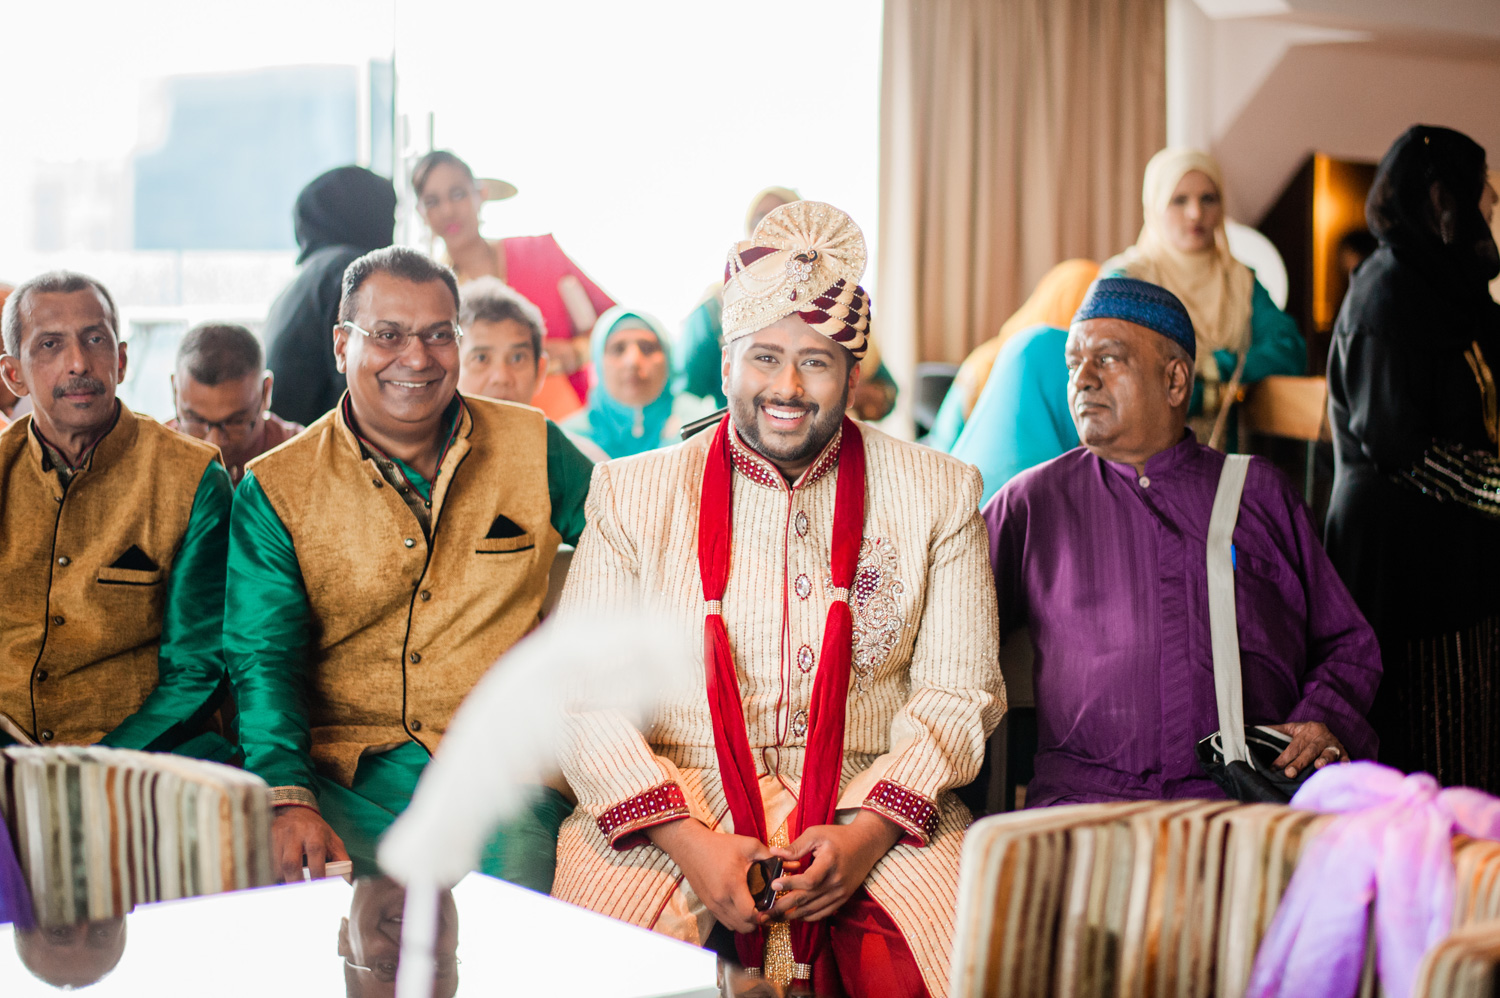 singapore-multi-cultural-wedding-mixed-couple-marriage-peninsular-hotel-indian-muslim-chinese